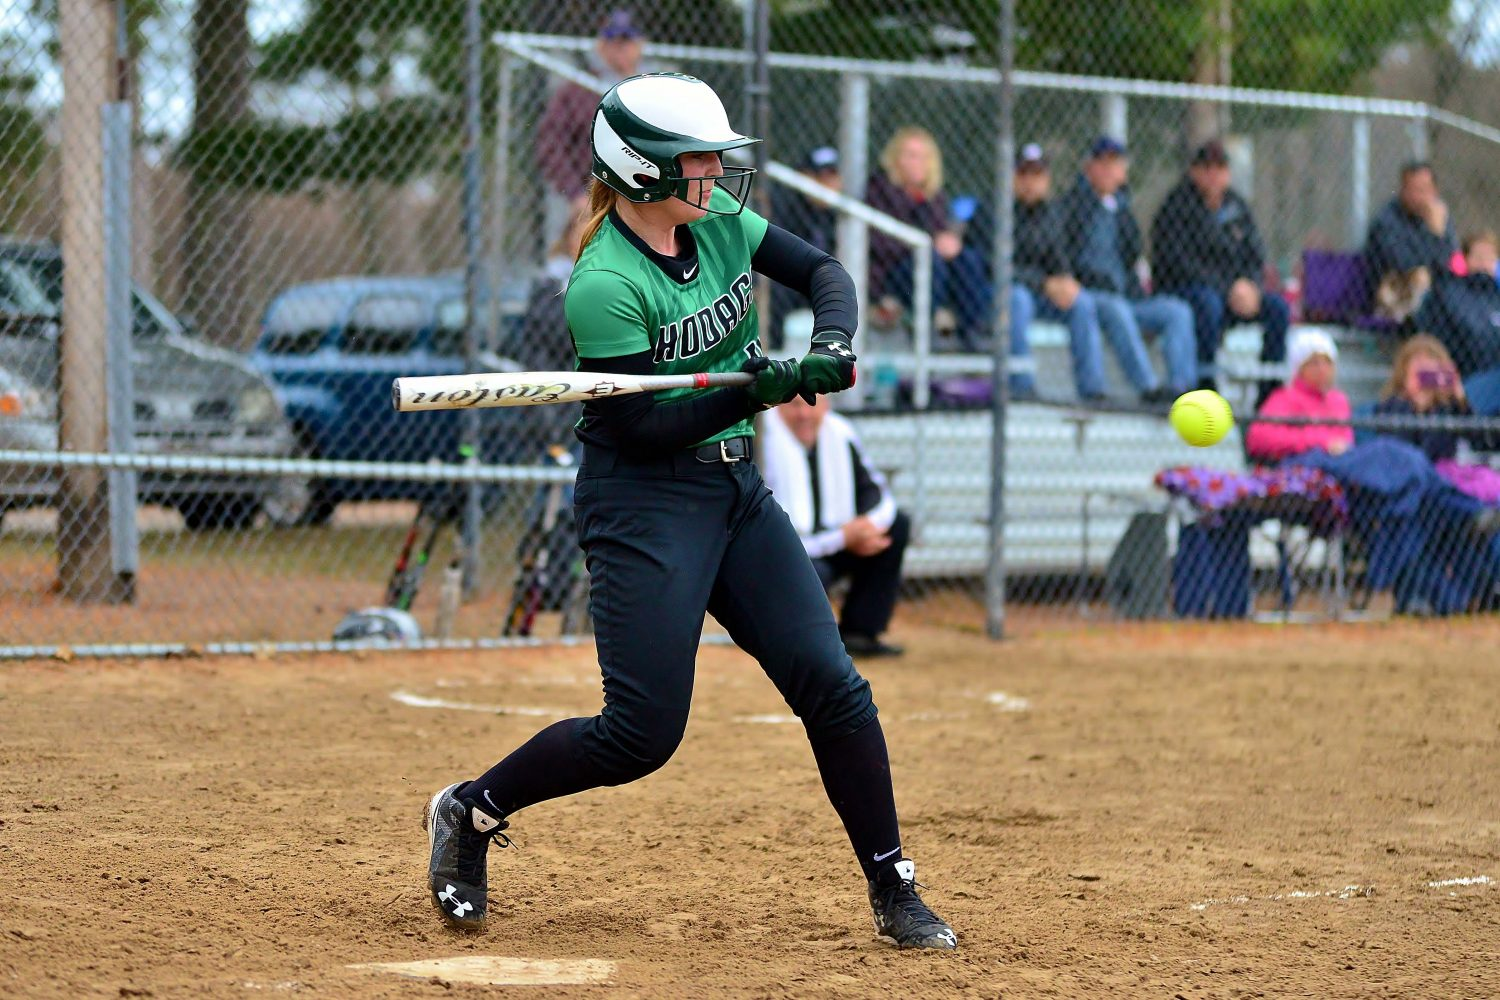 The Hodags' Lindsay Juedes keeps her eye on the ball.